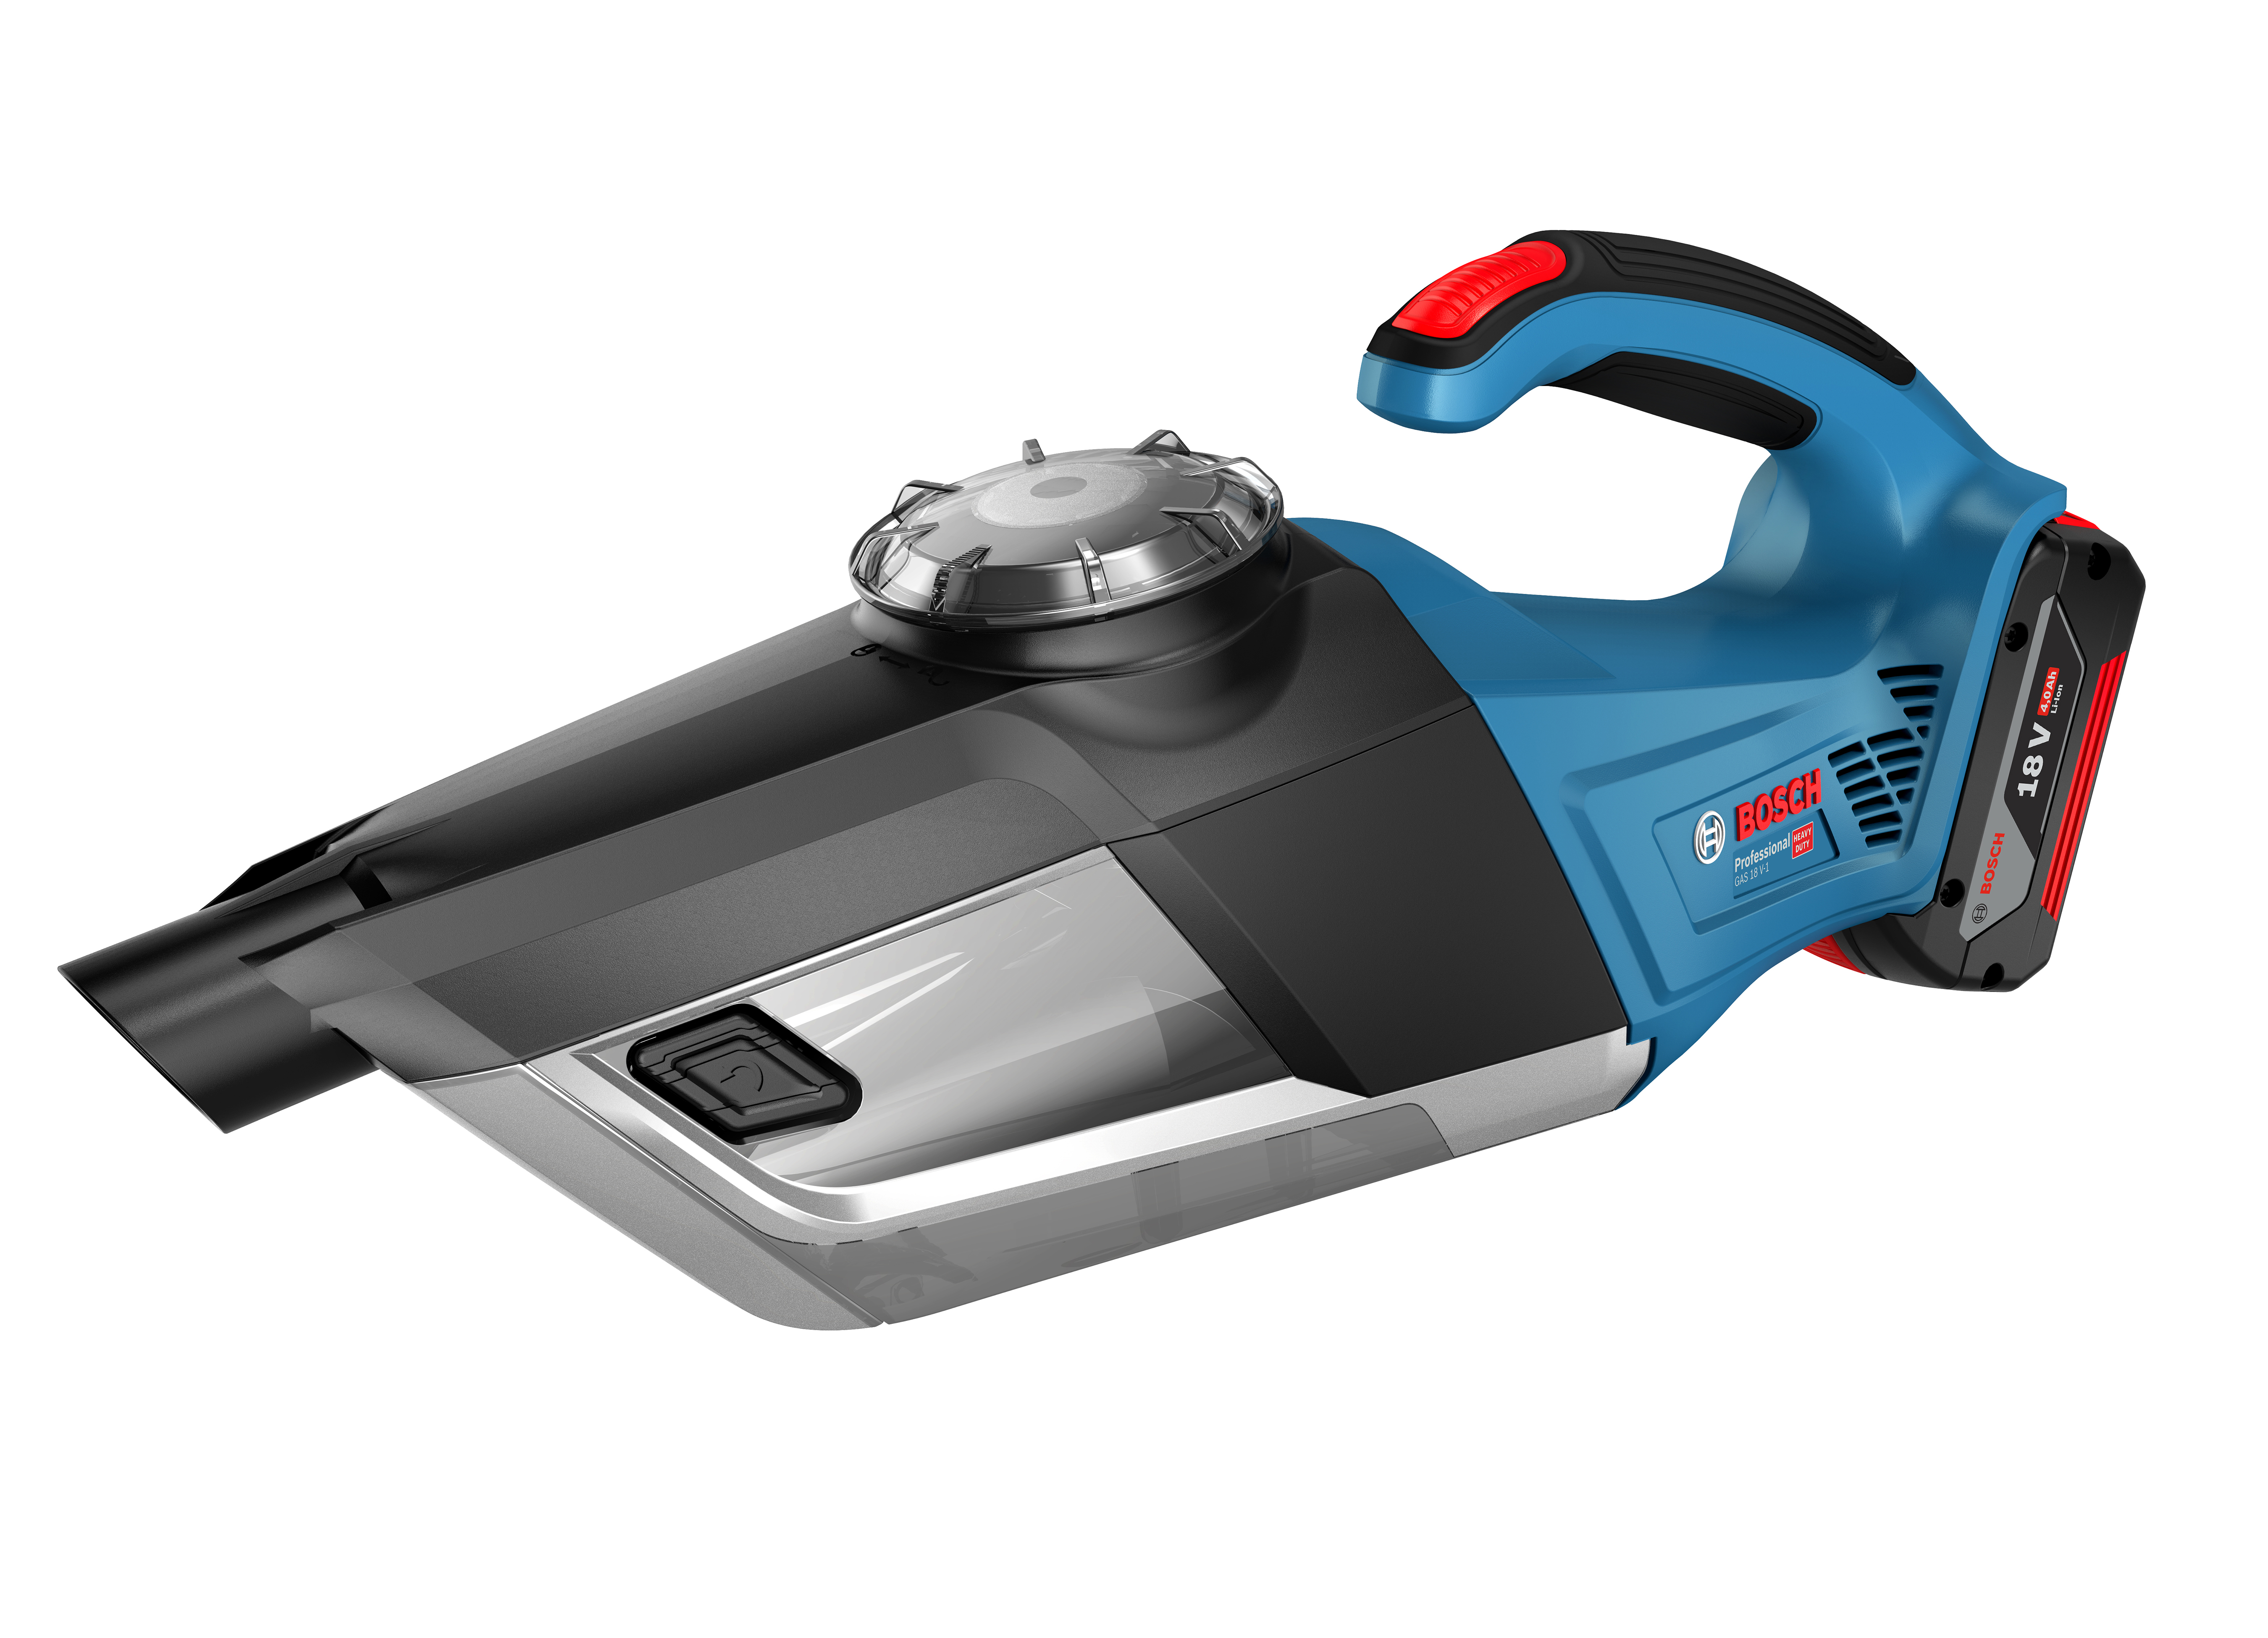 Dry extractor for rapid final cleaning: the GAS 18V-1 Professional from Bosch for professionals